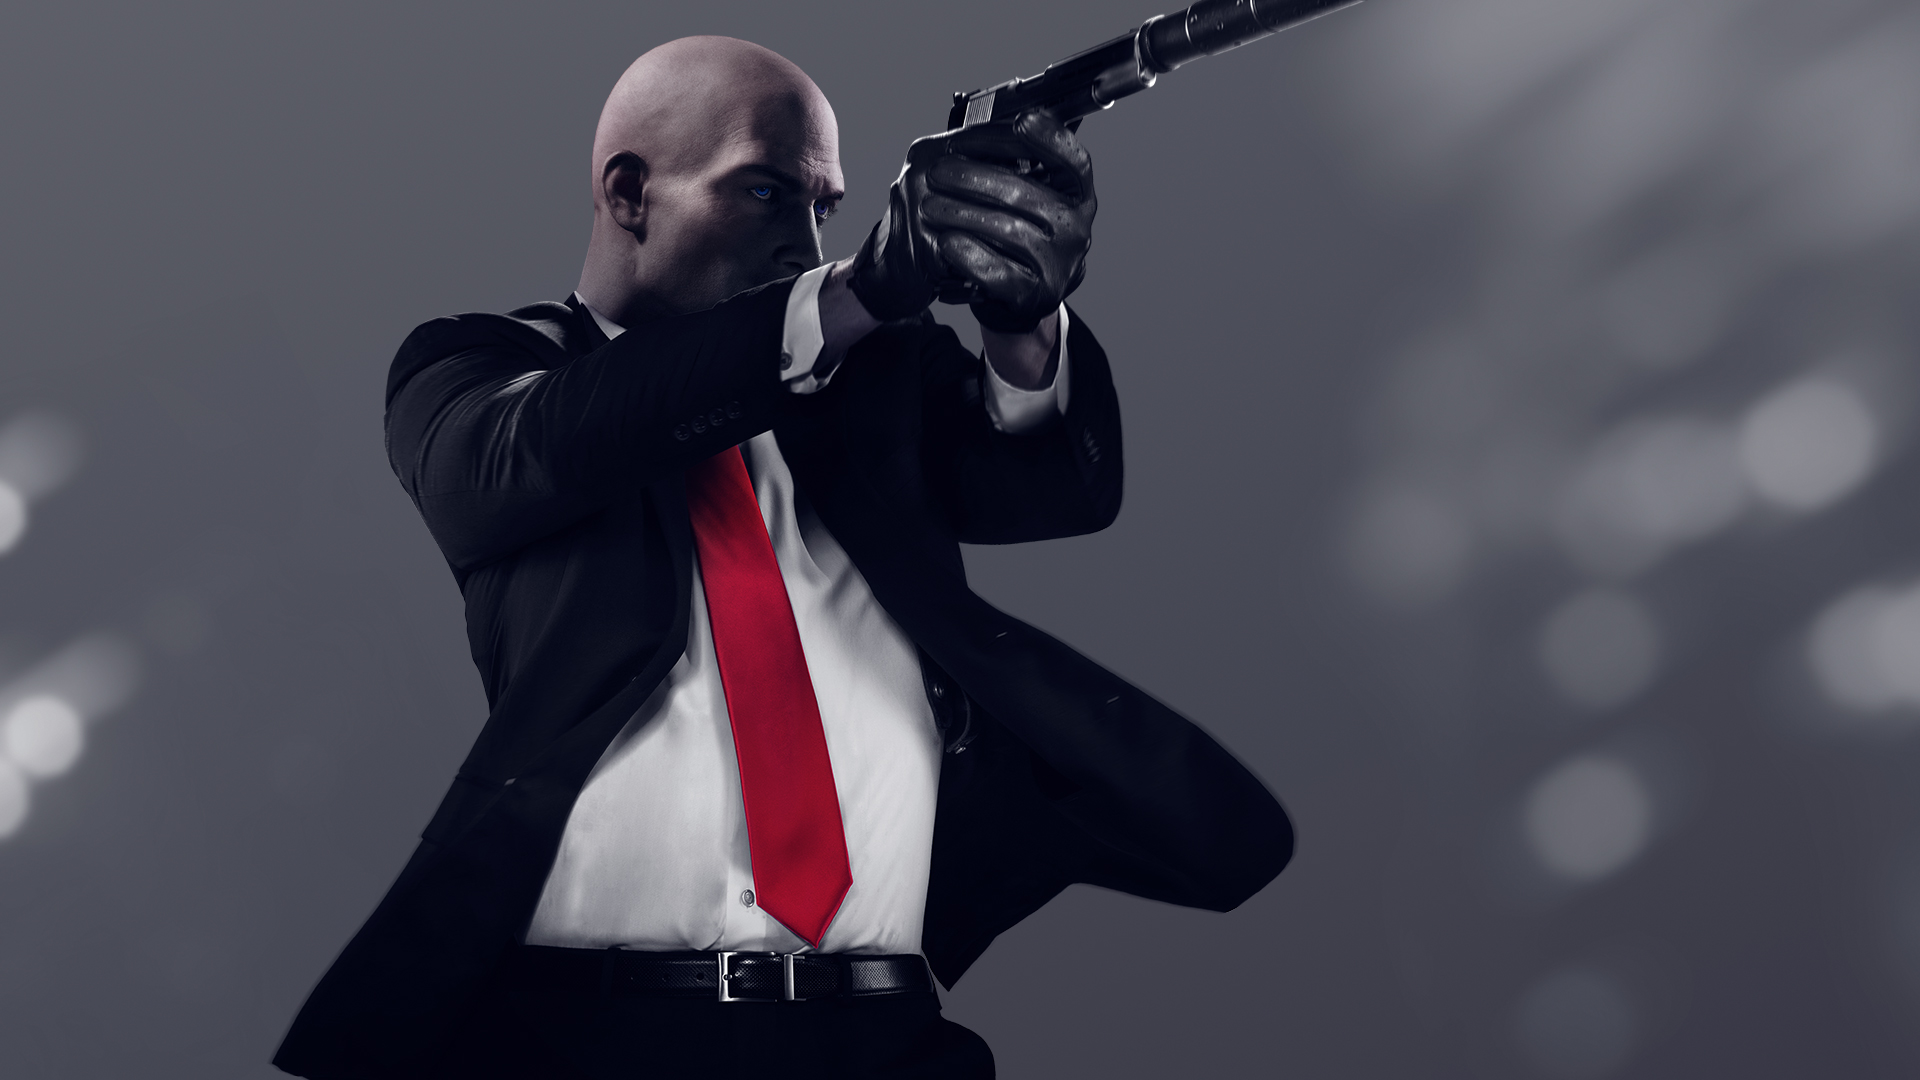 Hitman 2 2018 Video Game Hd Games 4k Wallpapers Images